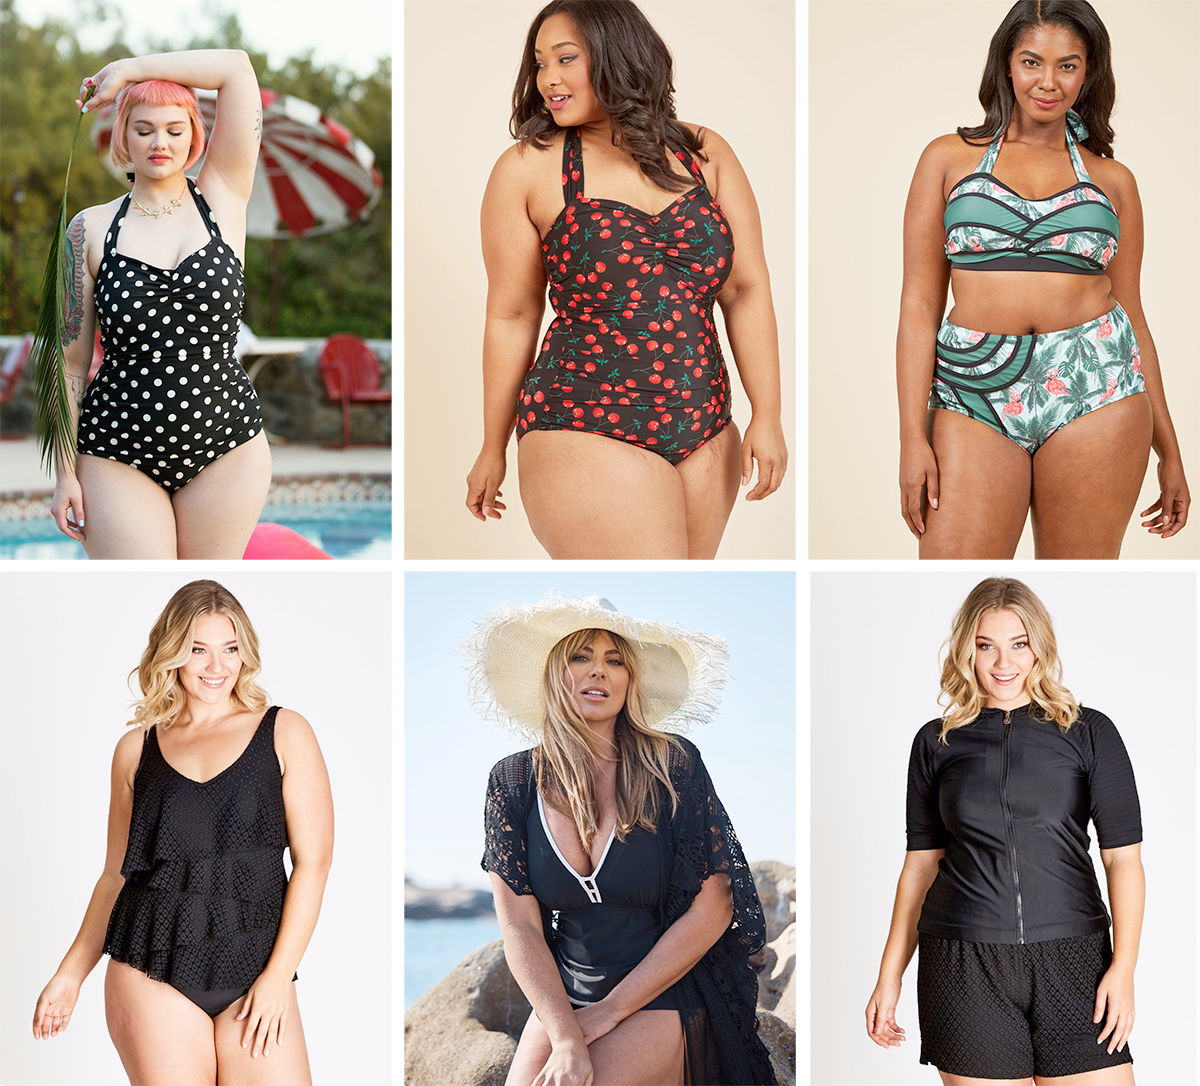 Plus size swimsuit special 2017 // ModCloth Beach Blanket Bingo One-Piece Swimsuit USD $89.99 | ModCloth Fruity Suity One-Piece Swimsuit USD $89.99 | Set the Serene Swimsuit in Flamingo, Top USD $15.97 and Bottom USD $15.97 | Autograph Crochet Ruffle One Piece $74.99 | Autograph Ruched One Piece $54.99 | Autograph Mesh Self Stripe Rash Vest $54.99